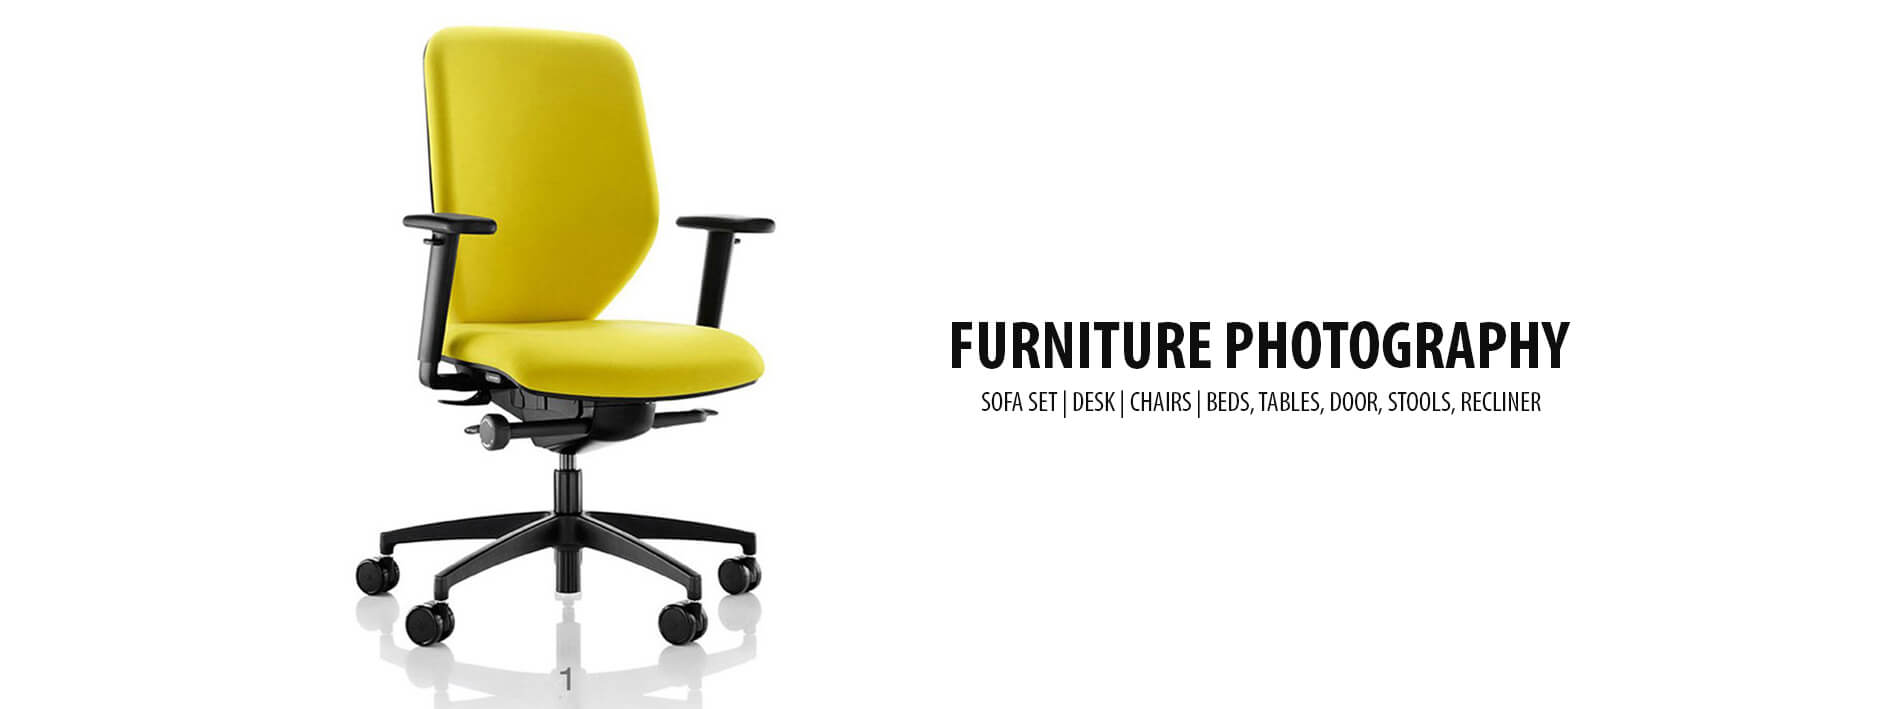 11 furniture photography